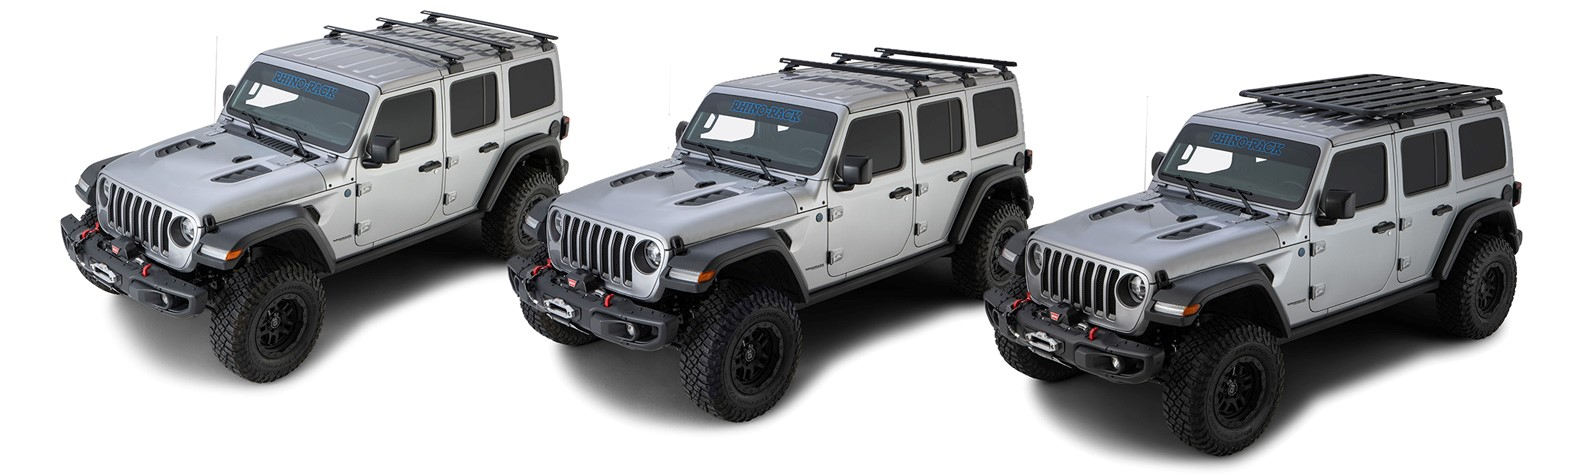 Jeep JL fitted with a Pioneer Platform on the Backbone with (RCL) low profile locking legs